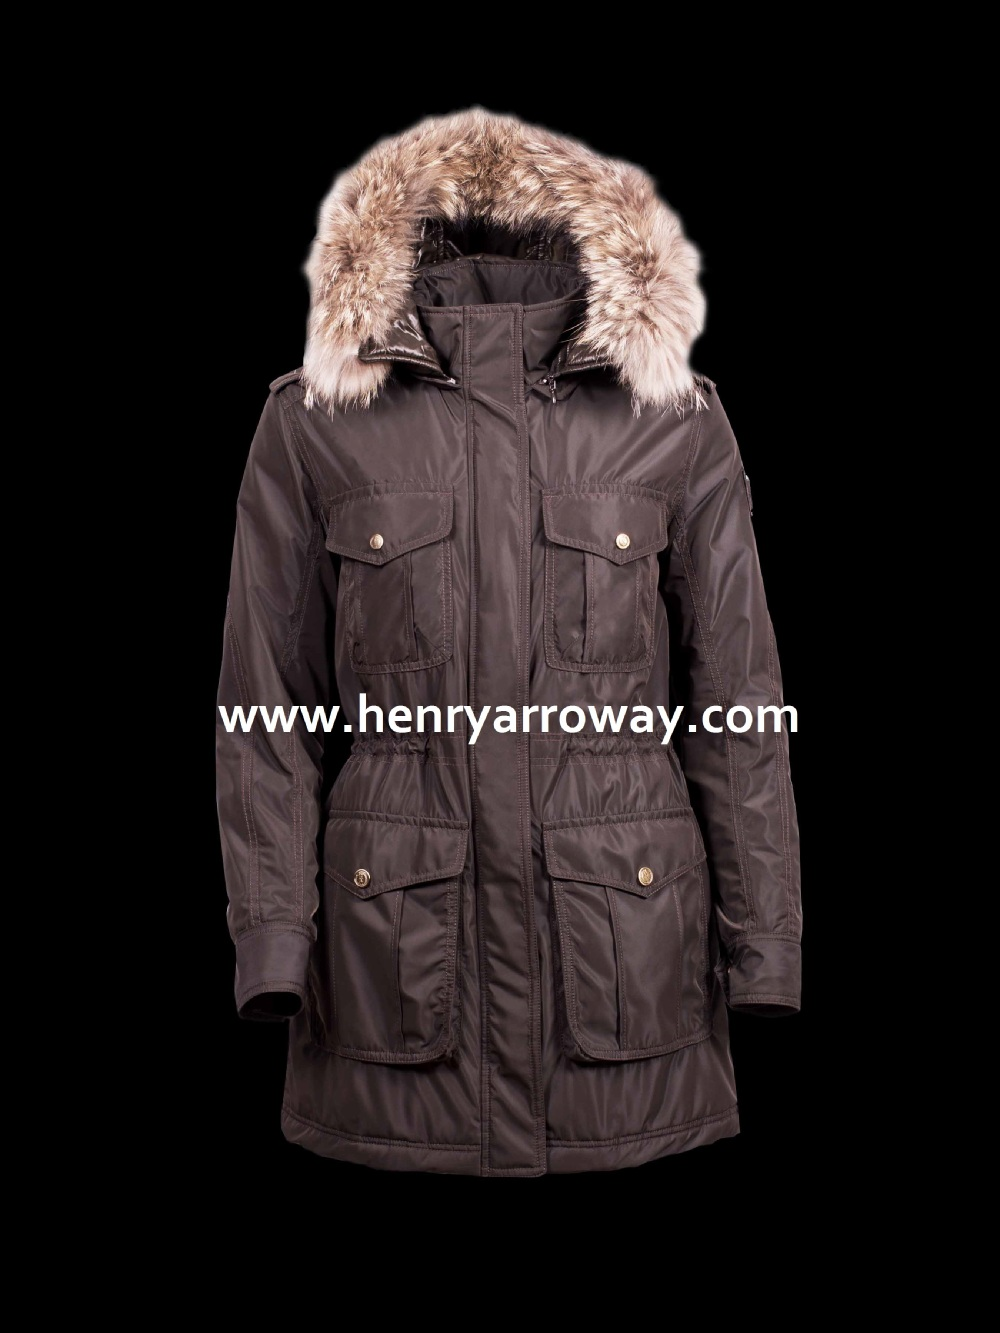 New fashion european style water repellent padded parka with natural fur hood for ladies from Henry Arroway Spain